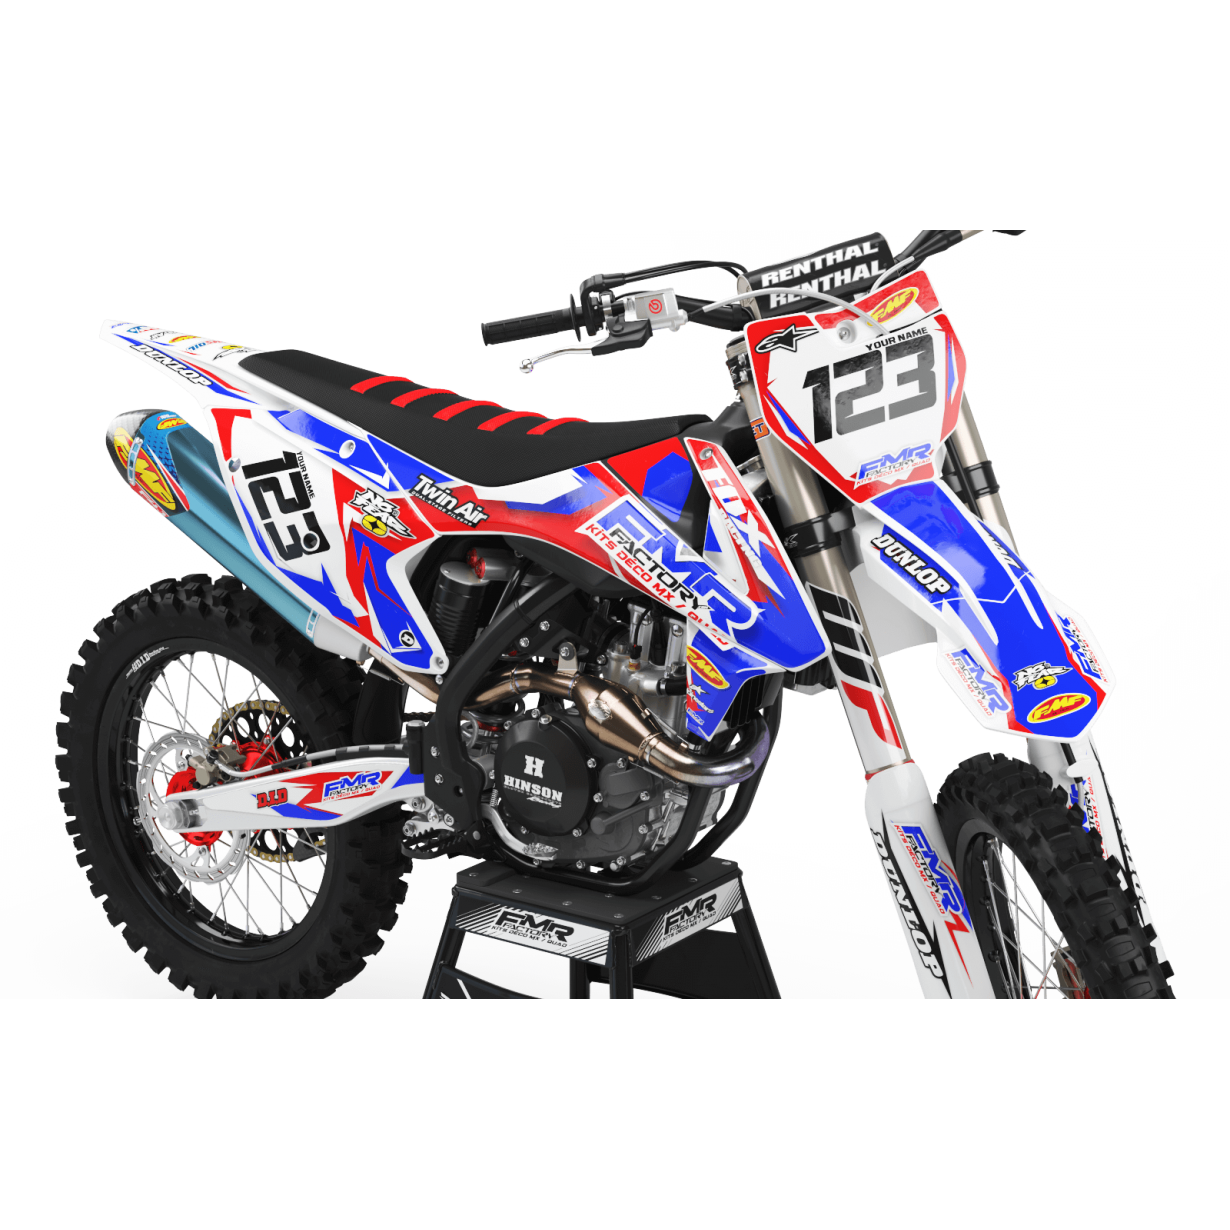 Kit deco perso ktm a13a 2